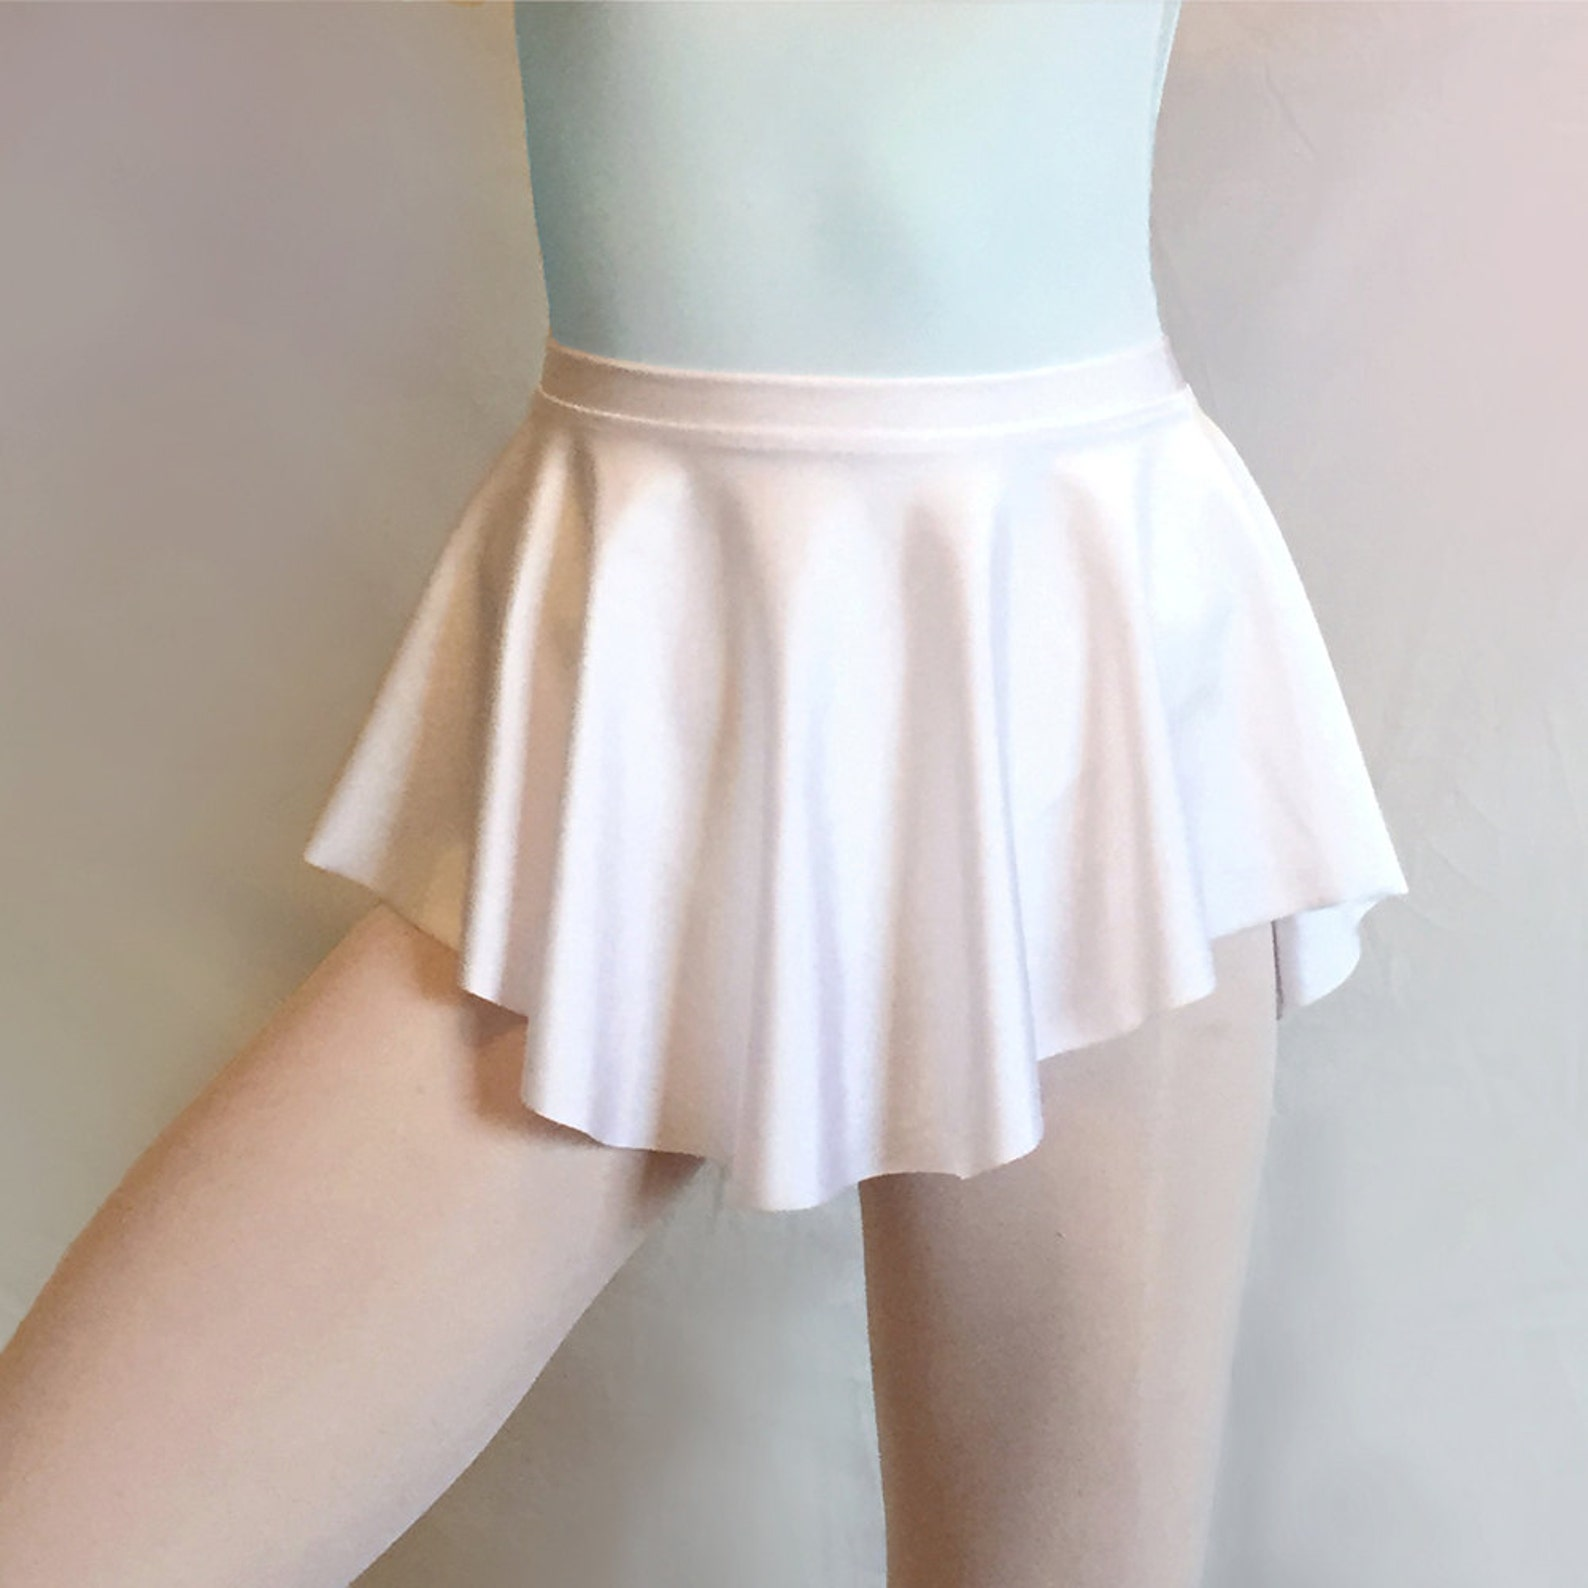 ballet skirt- white sab skirt- dance wear- white lycra/ spandex- royall dancewear- pull-on skating- lyrical costume -